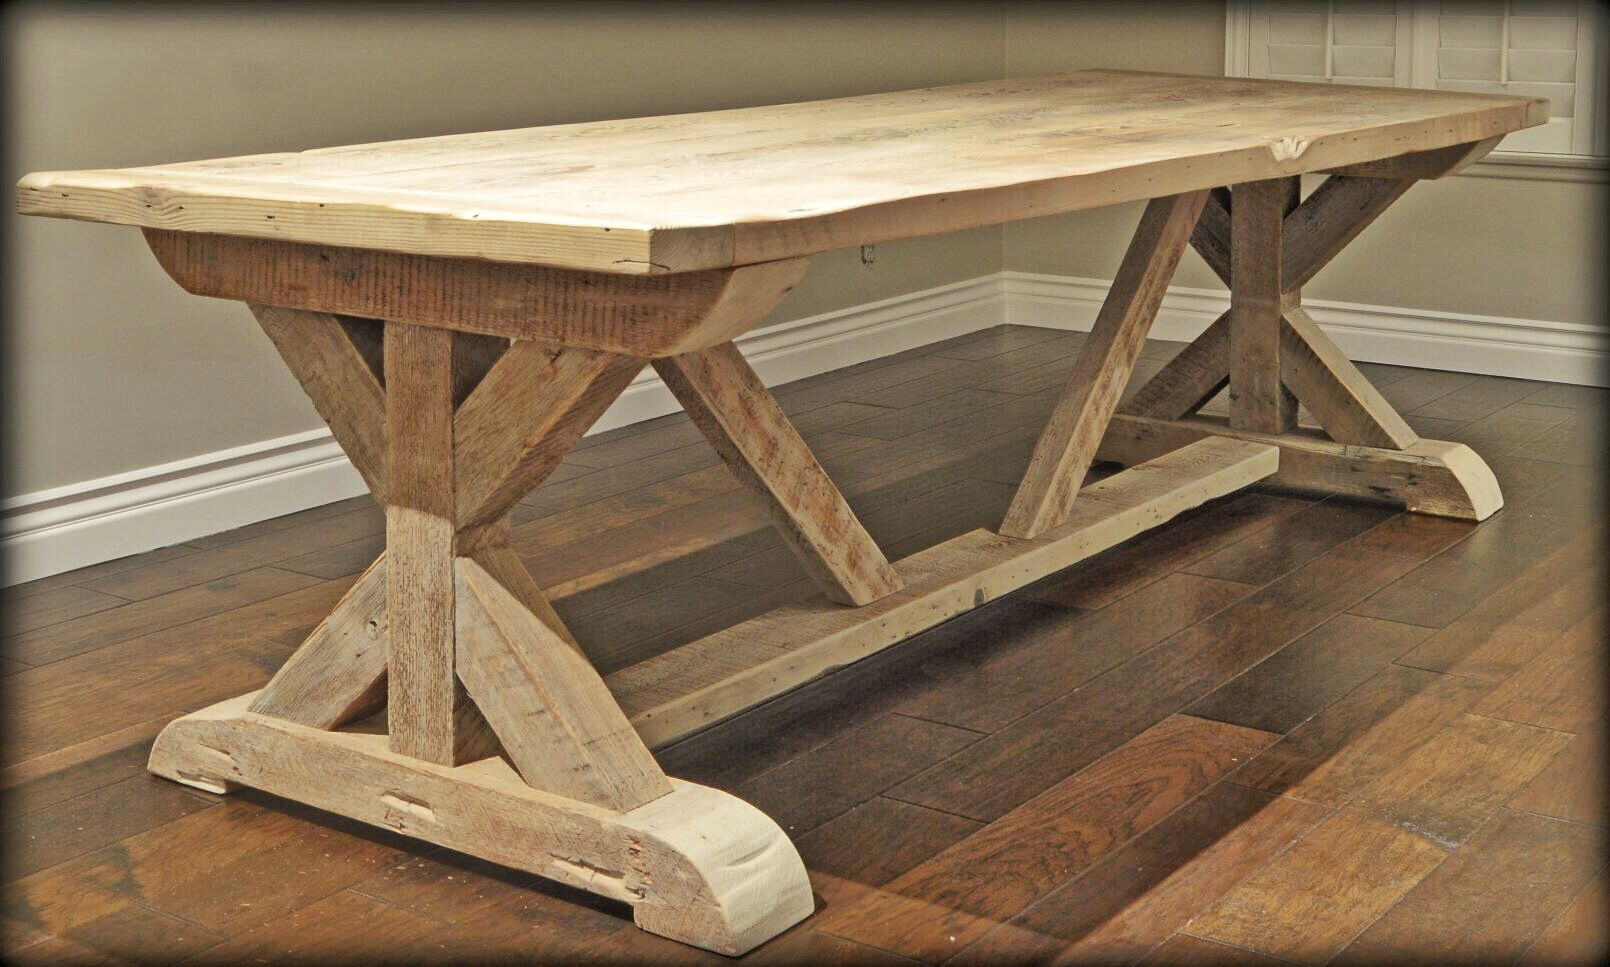 Inspired By Our Time In Spain This Piece Is Handcrafted Of Solid Wood Made To Give That Old World Feel Where Families Gathere Dining Table Rustic Table Table